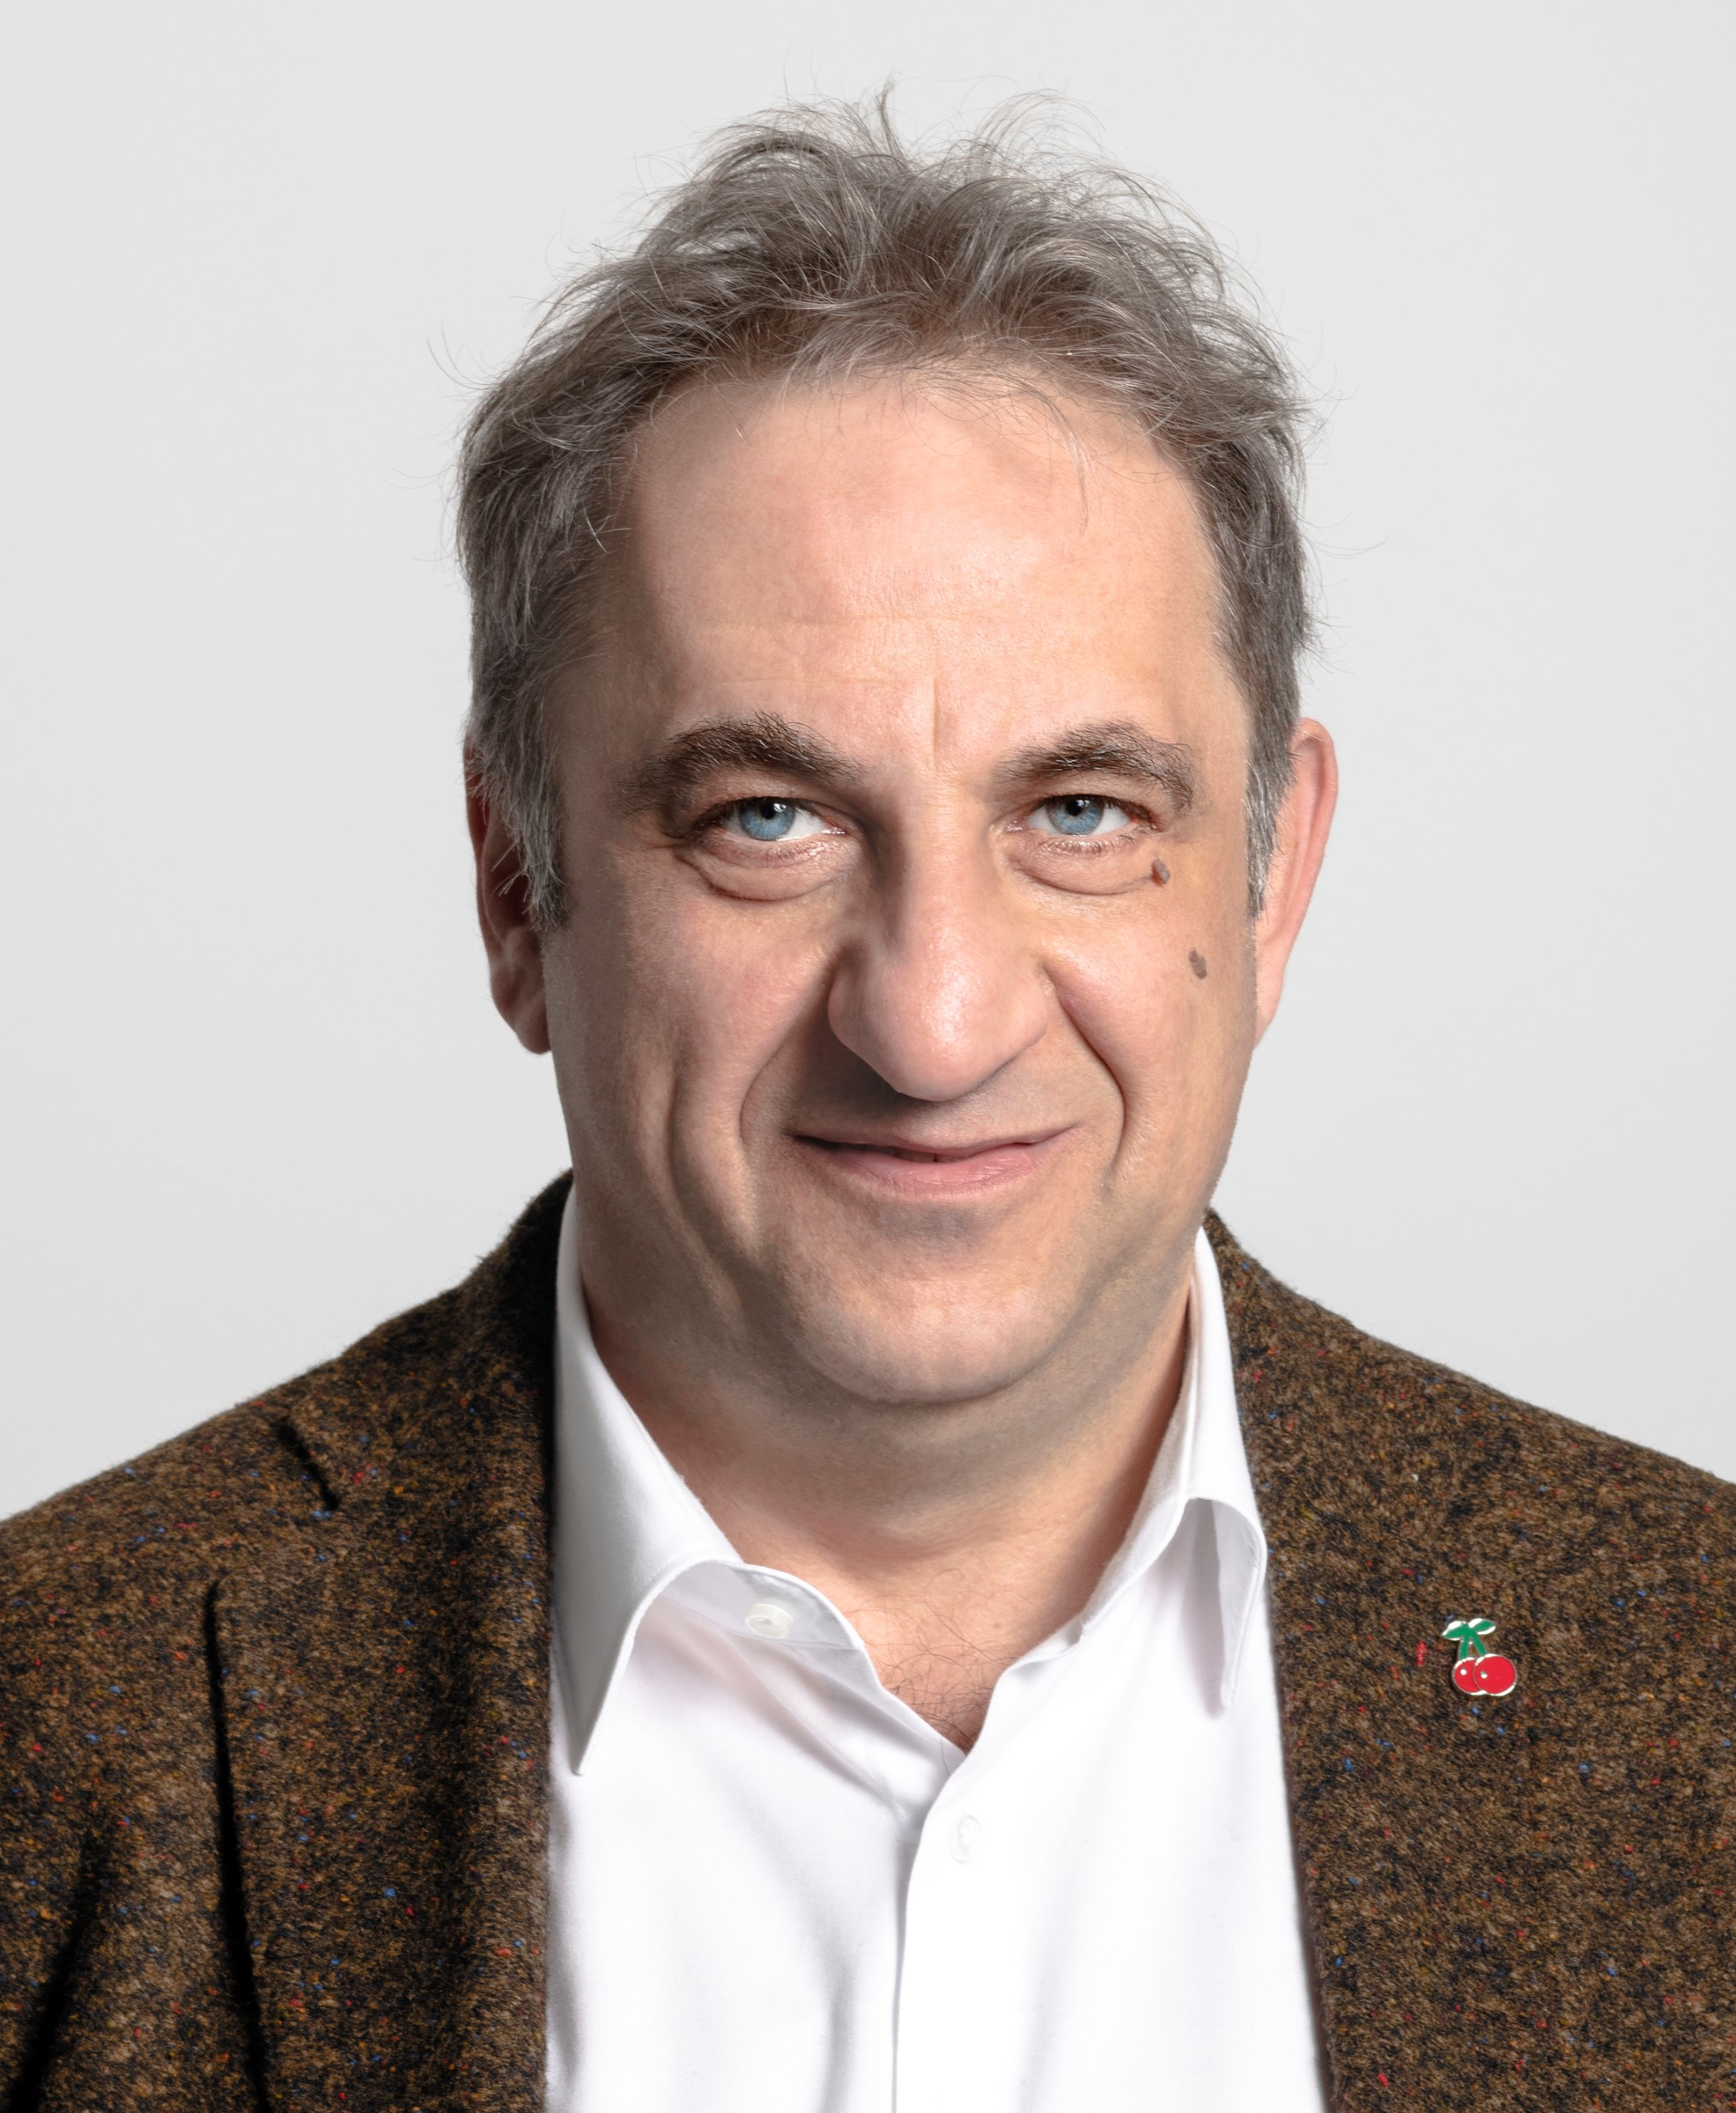 Gian Musolino, country manager di Selligent Marketing Cloud